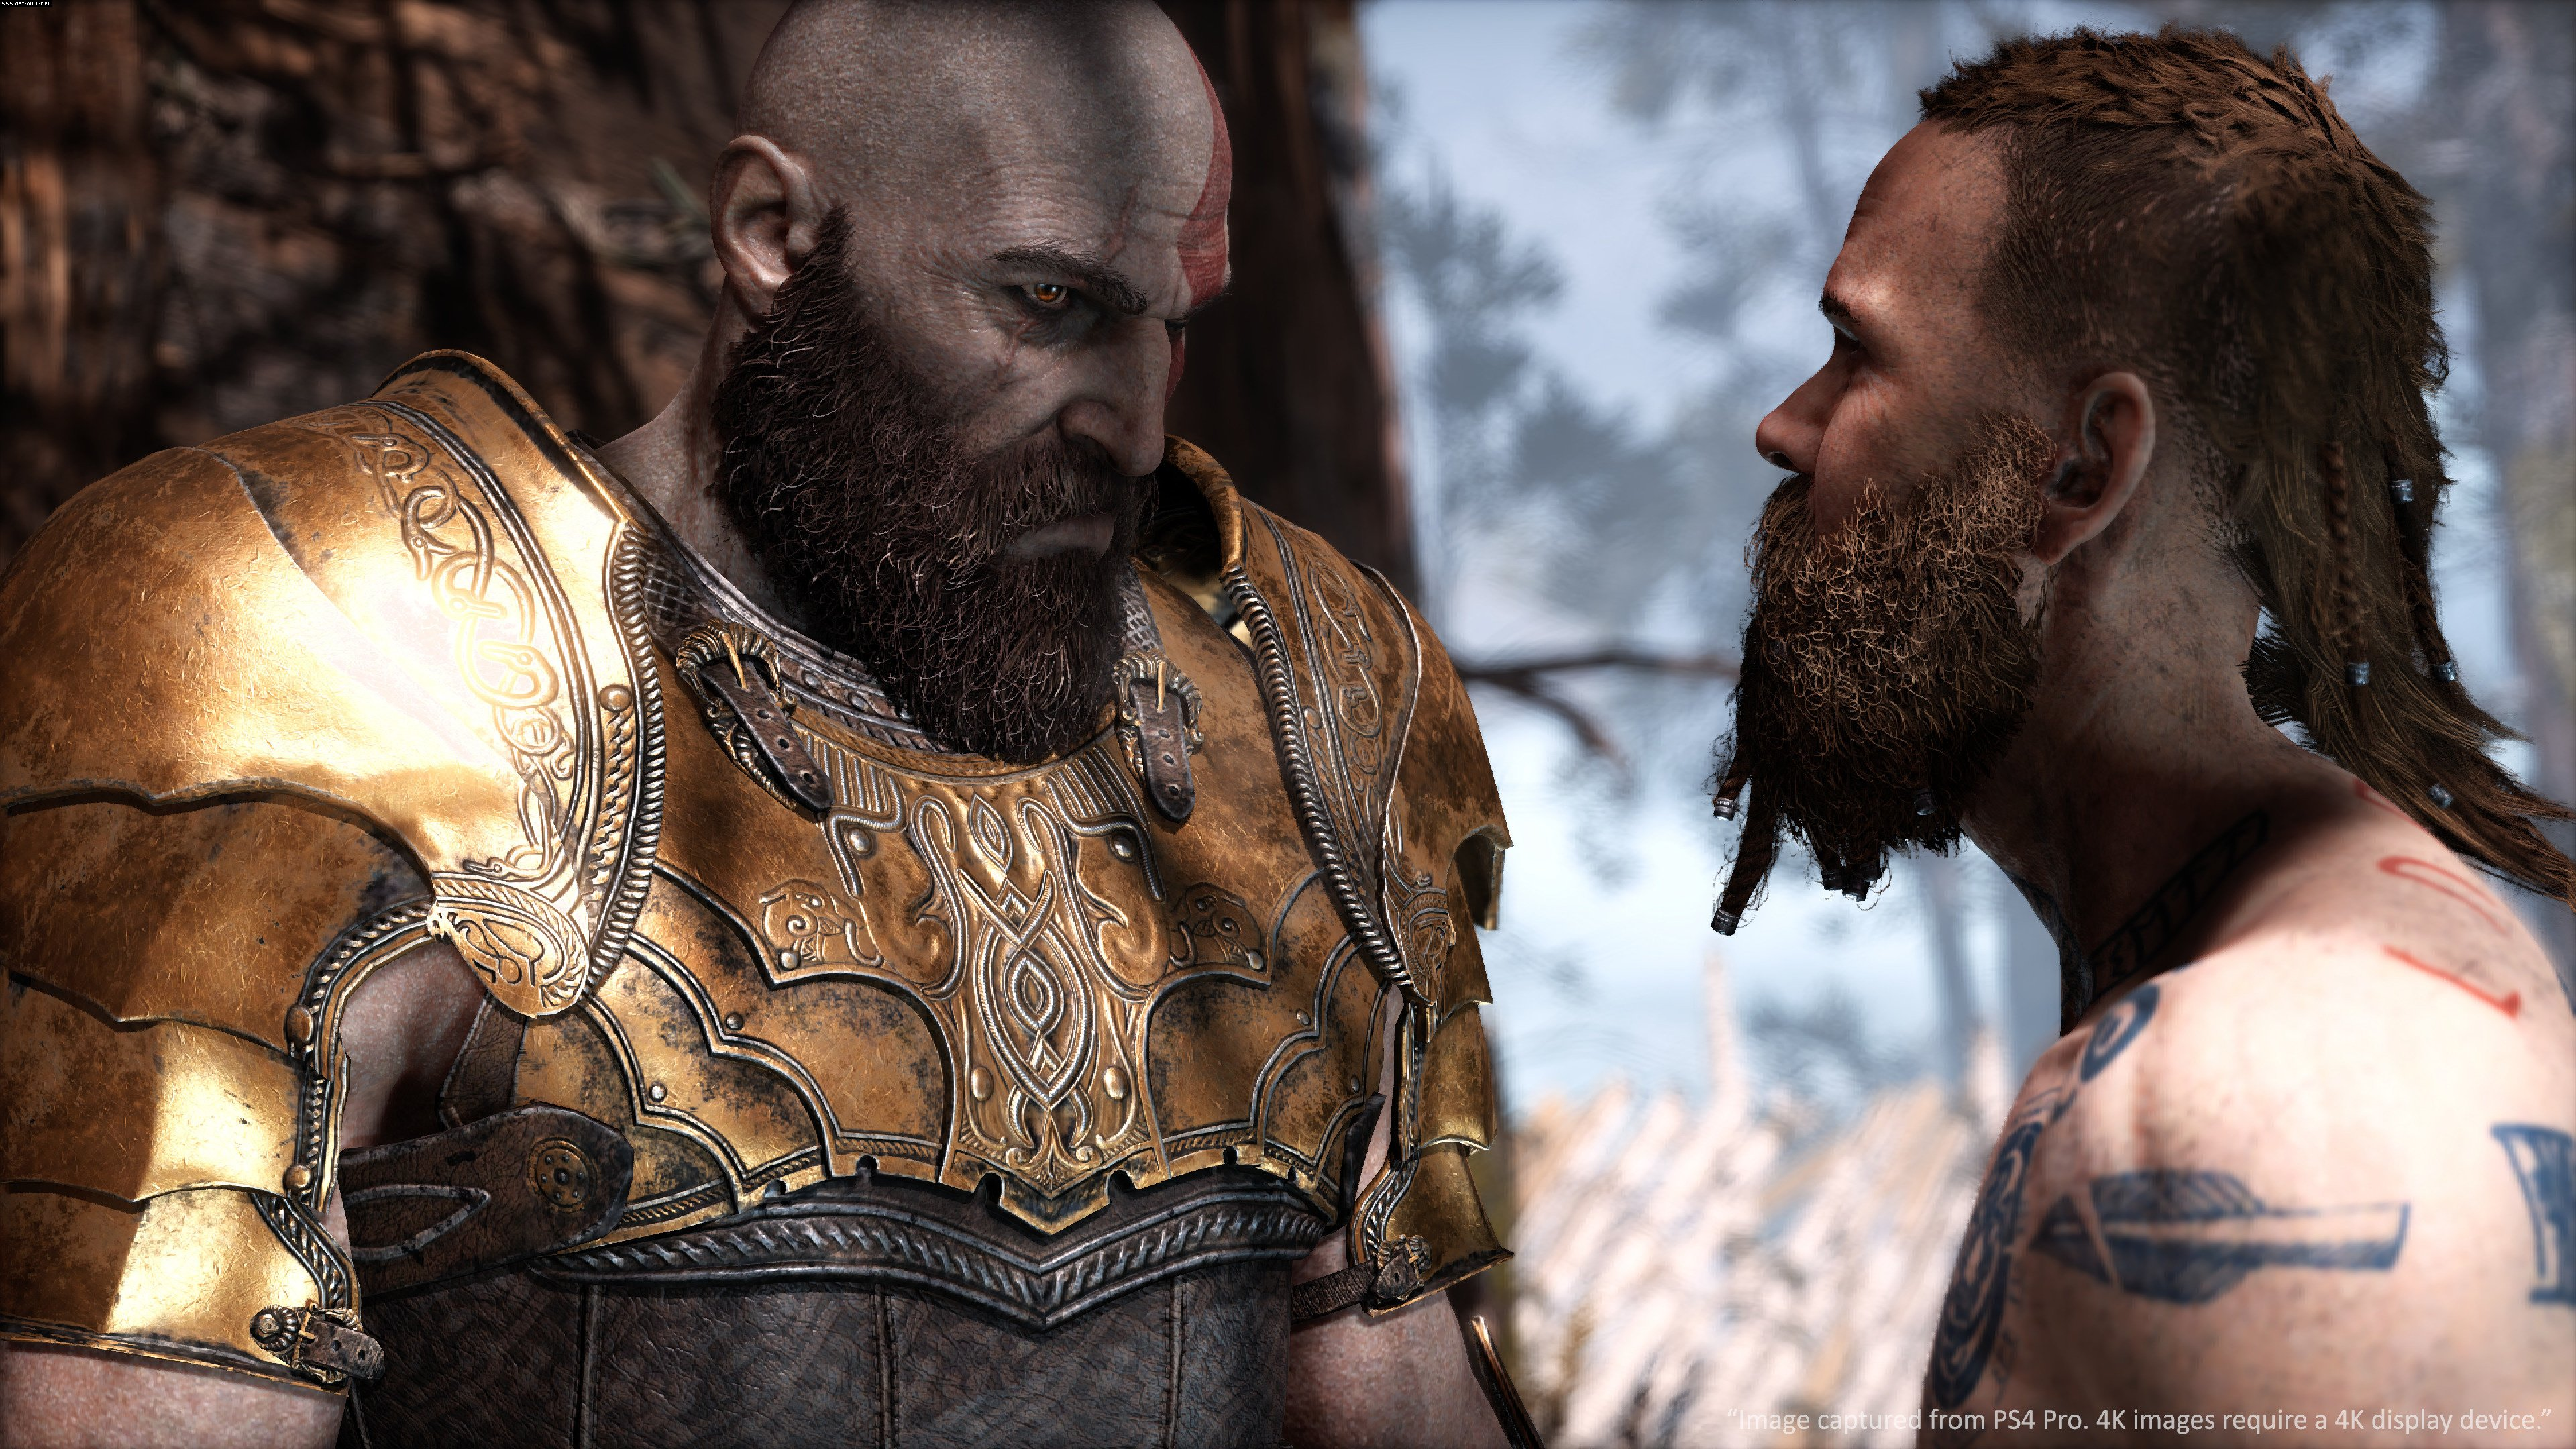 God of War PS4 Gry Screen 5/105, Sony Interactive Entertainment